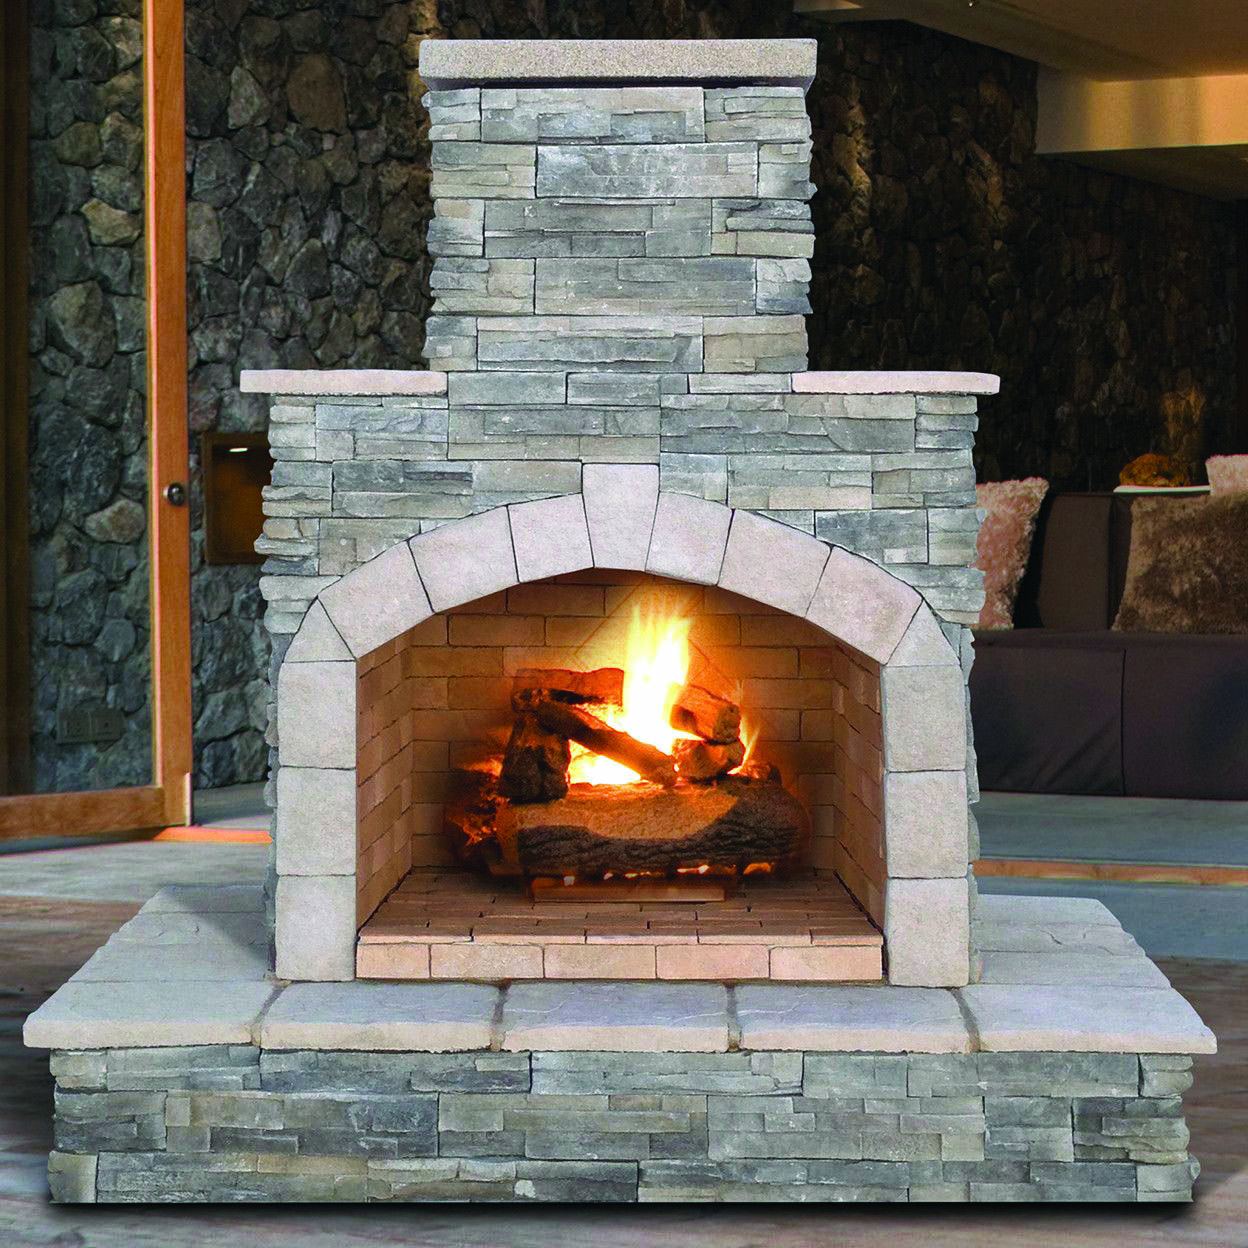 Fire Place Design Concepts For An Elegant Exterior Space Homes Tre Backyard Fireplace Natural Gas Outdoor Fireplace Outdoor Fireplace Designs